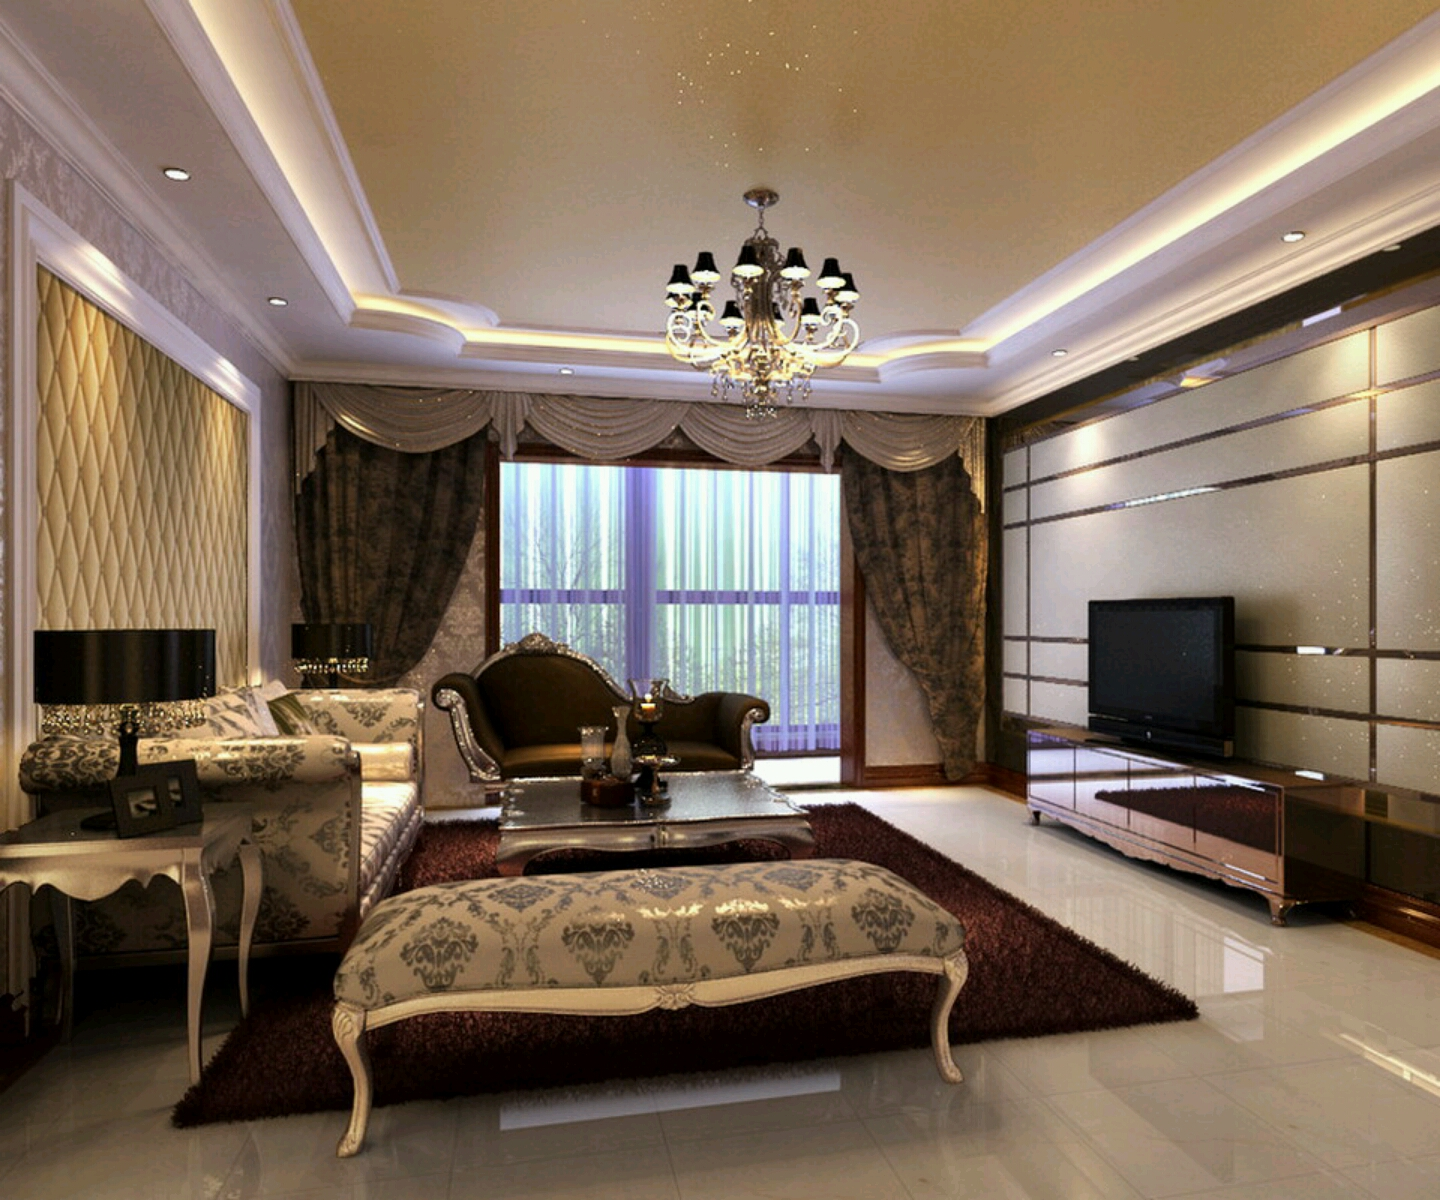 New home designs latest.: Luxury homes interior decoration living room ...